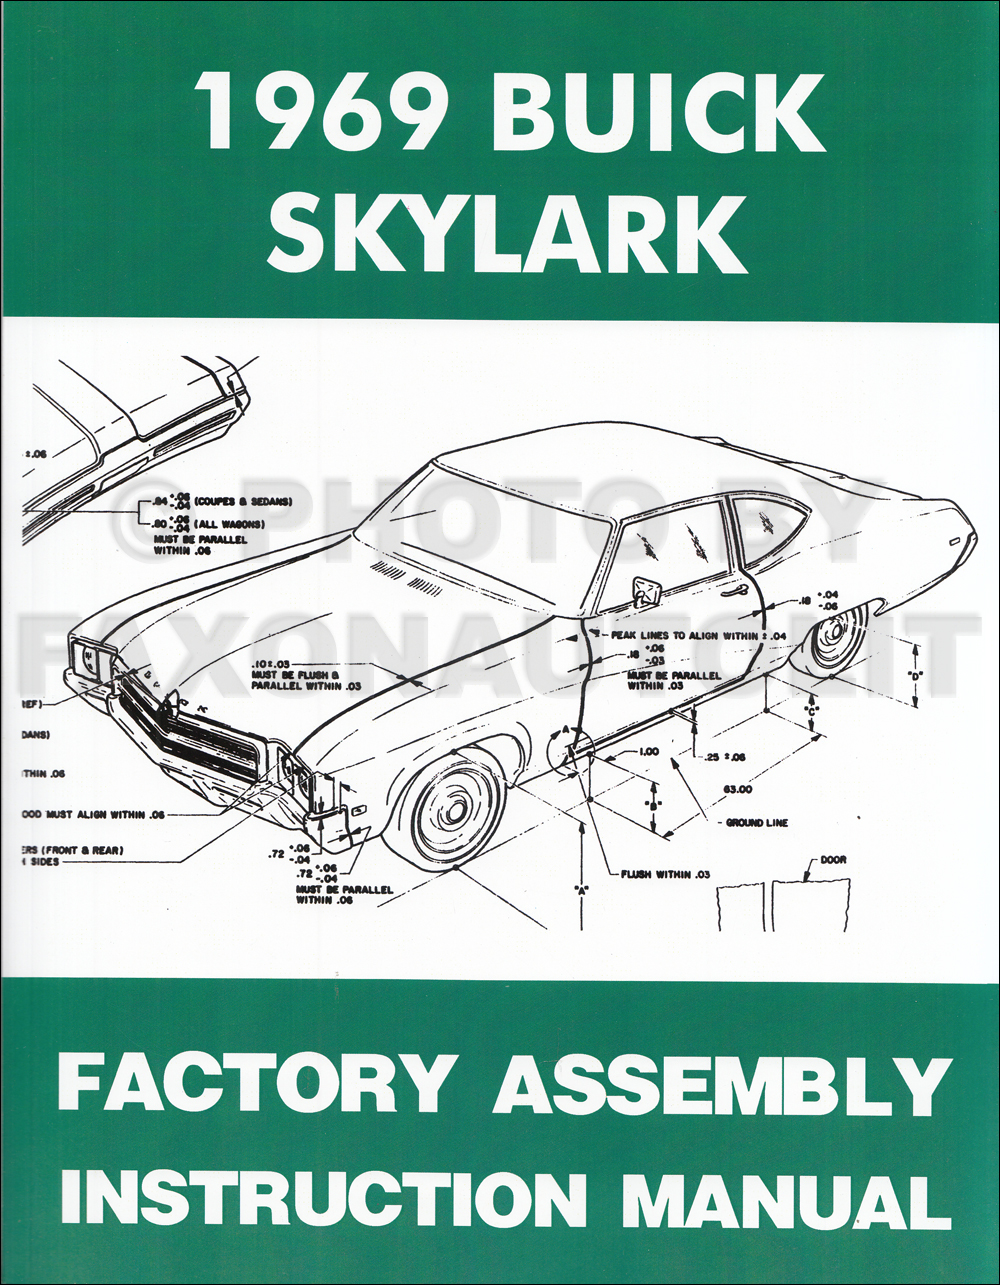 1969 Skylark Wiring Diagrams 1998 Suzuki Esteem Wiring Diagrams For Wiring Diagram Schematics